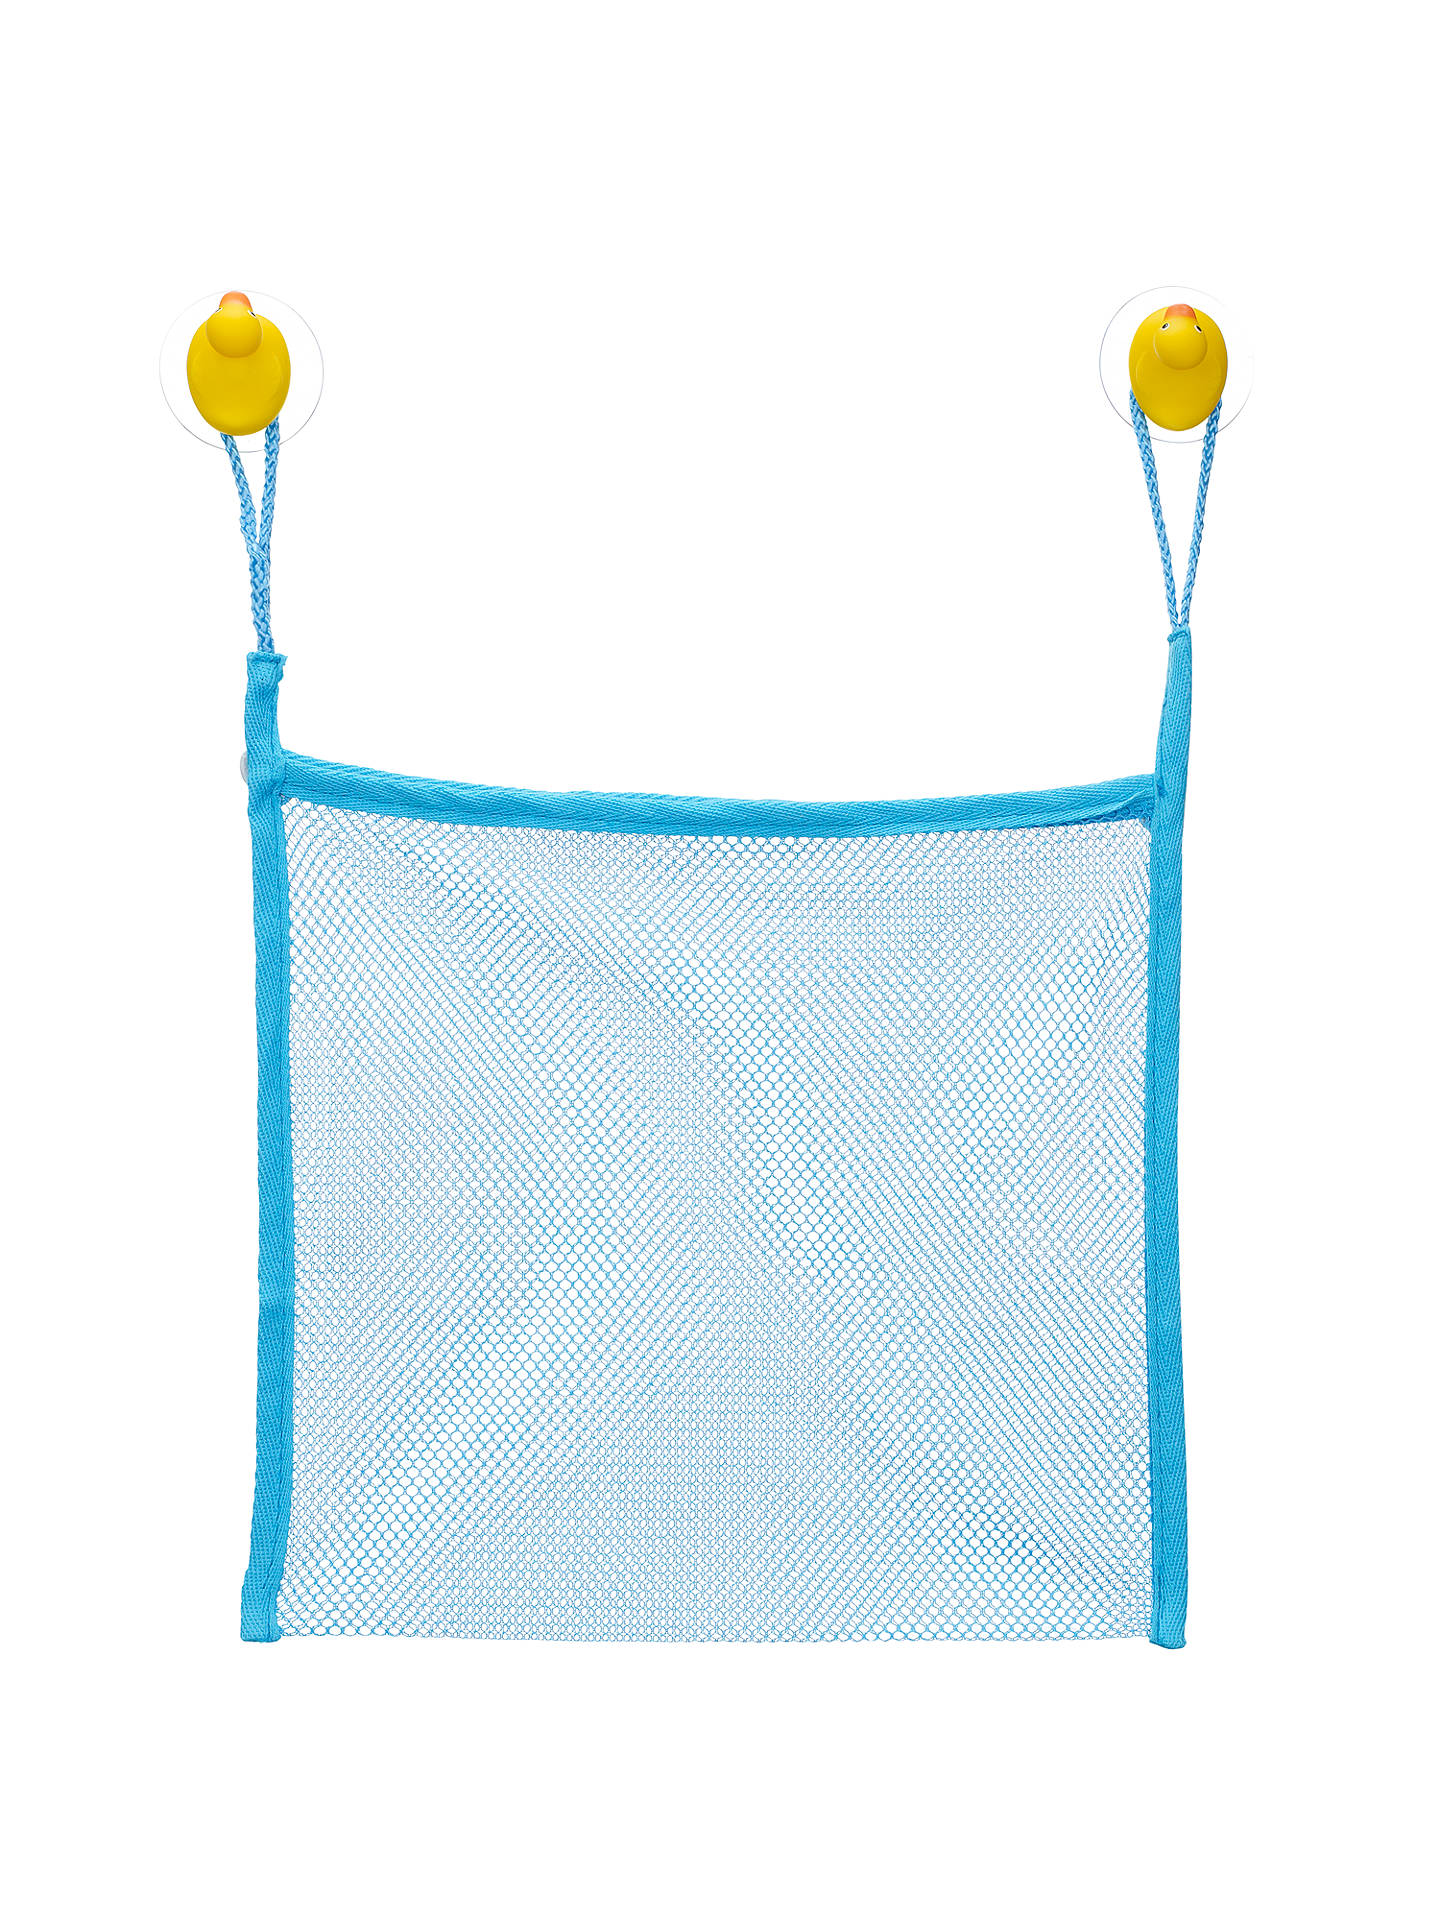 Buy John Lewis & Partners Bath Toy Bag Online at johnlewis.com